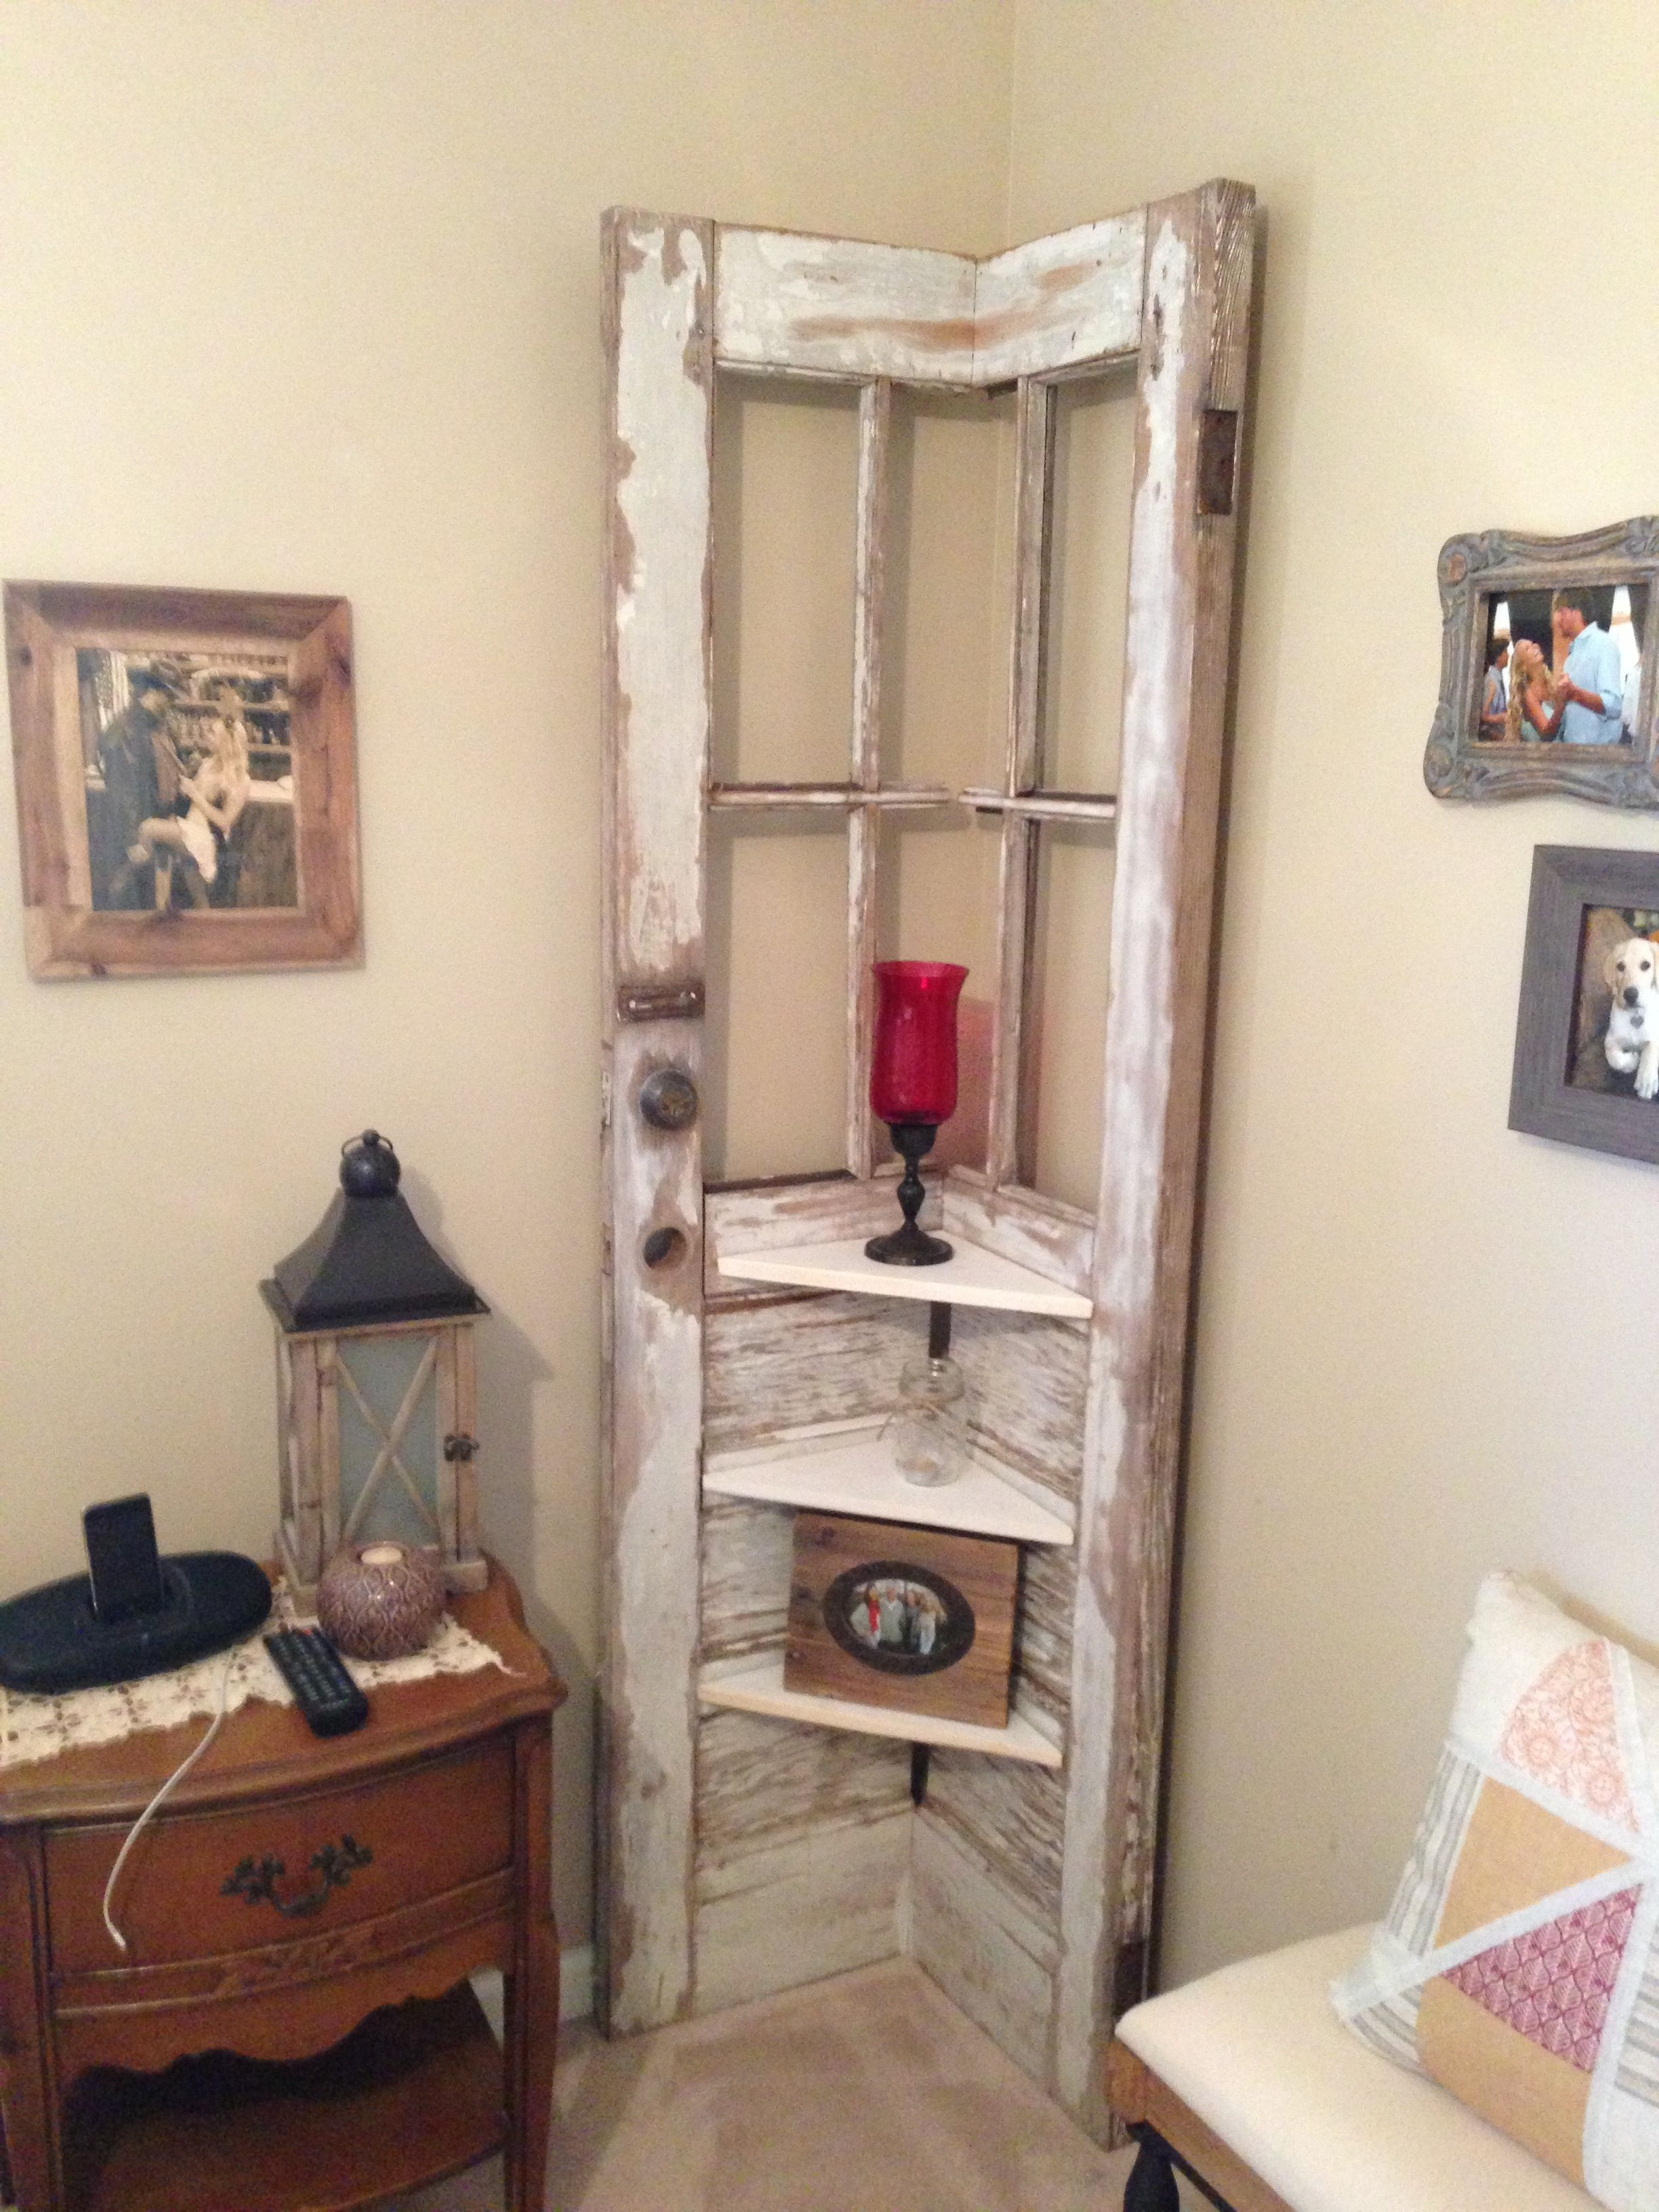 Beau Rustic Door Shelf ;)